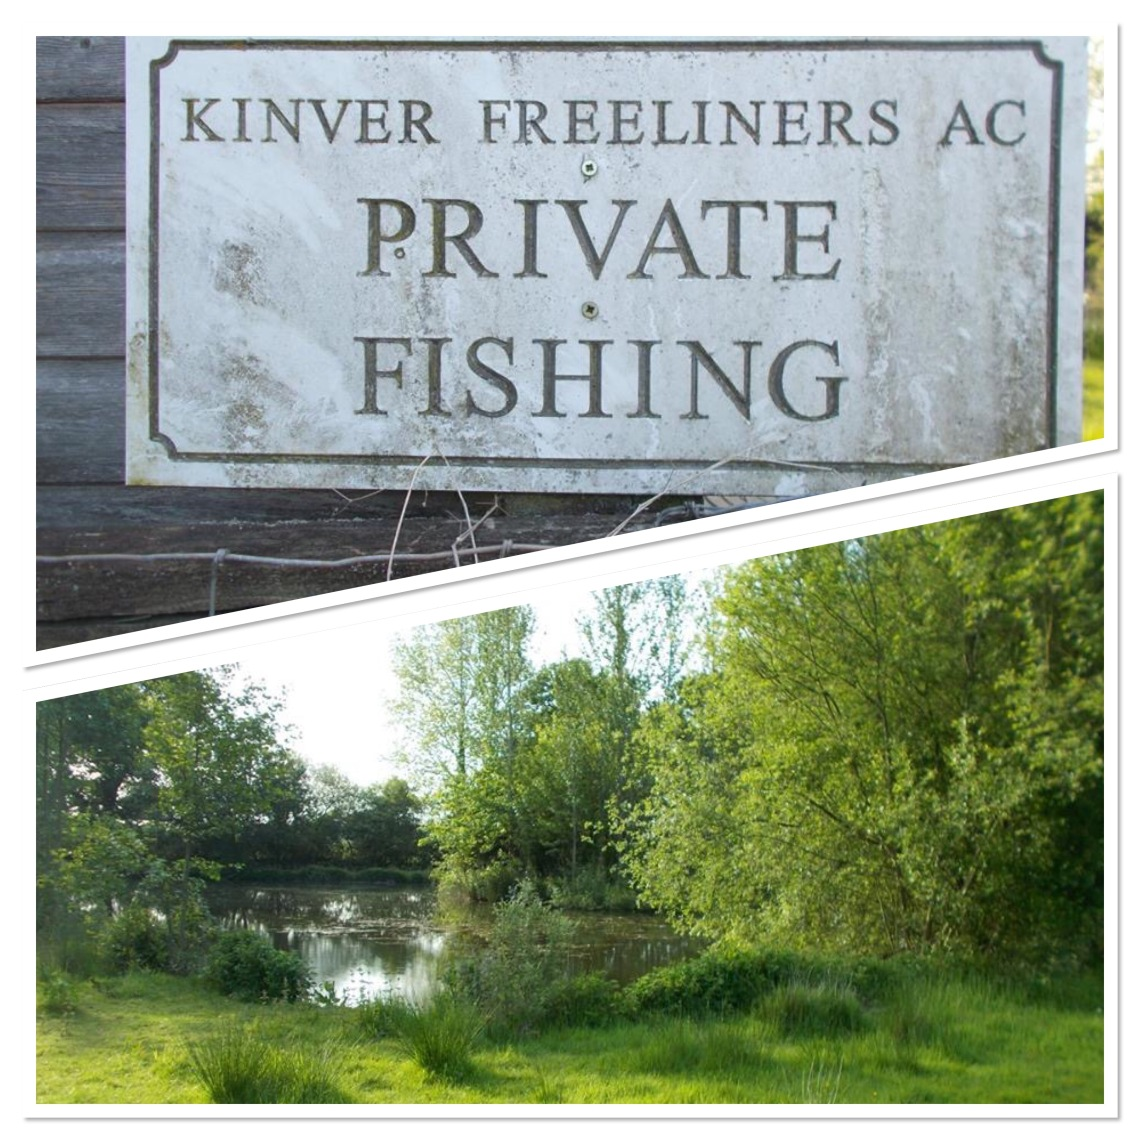 Kinver Freeliners - a great club to be part of